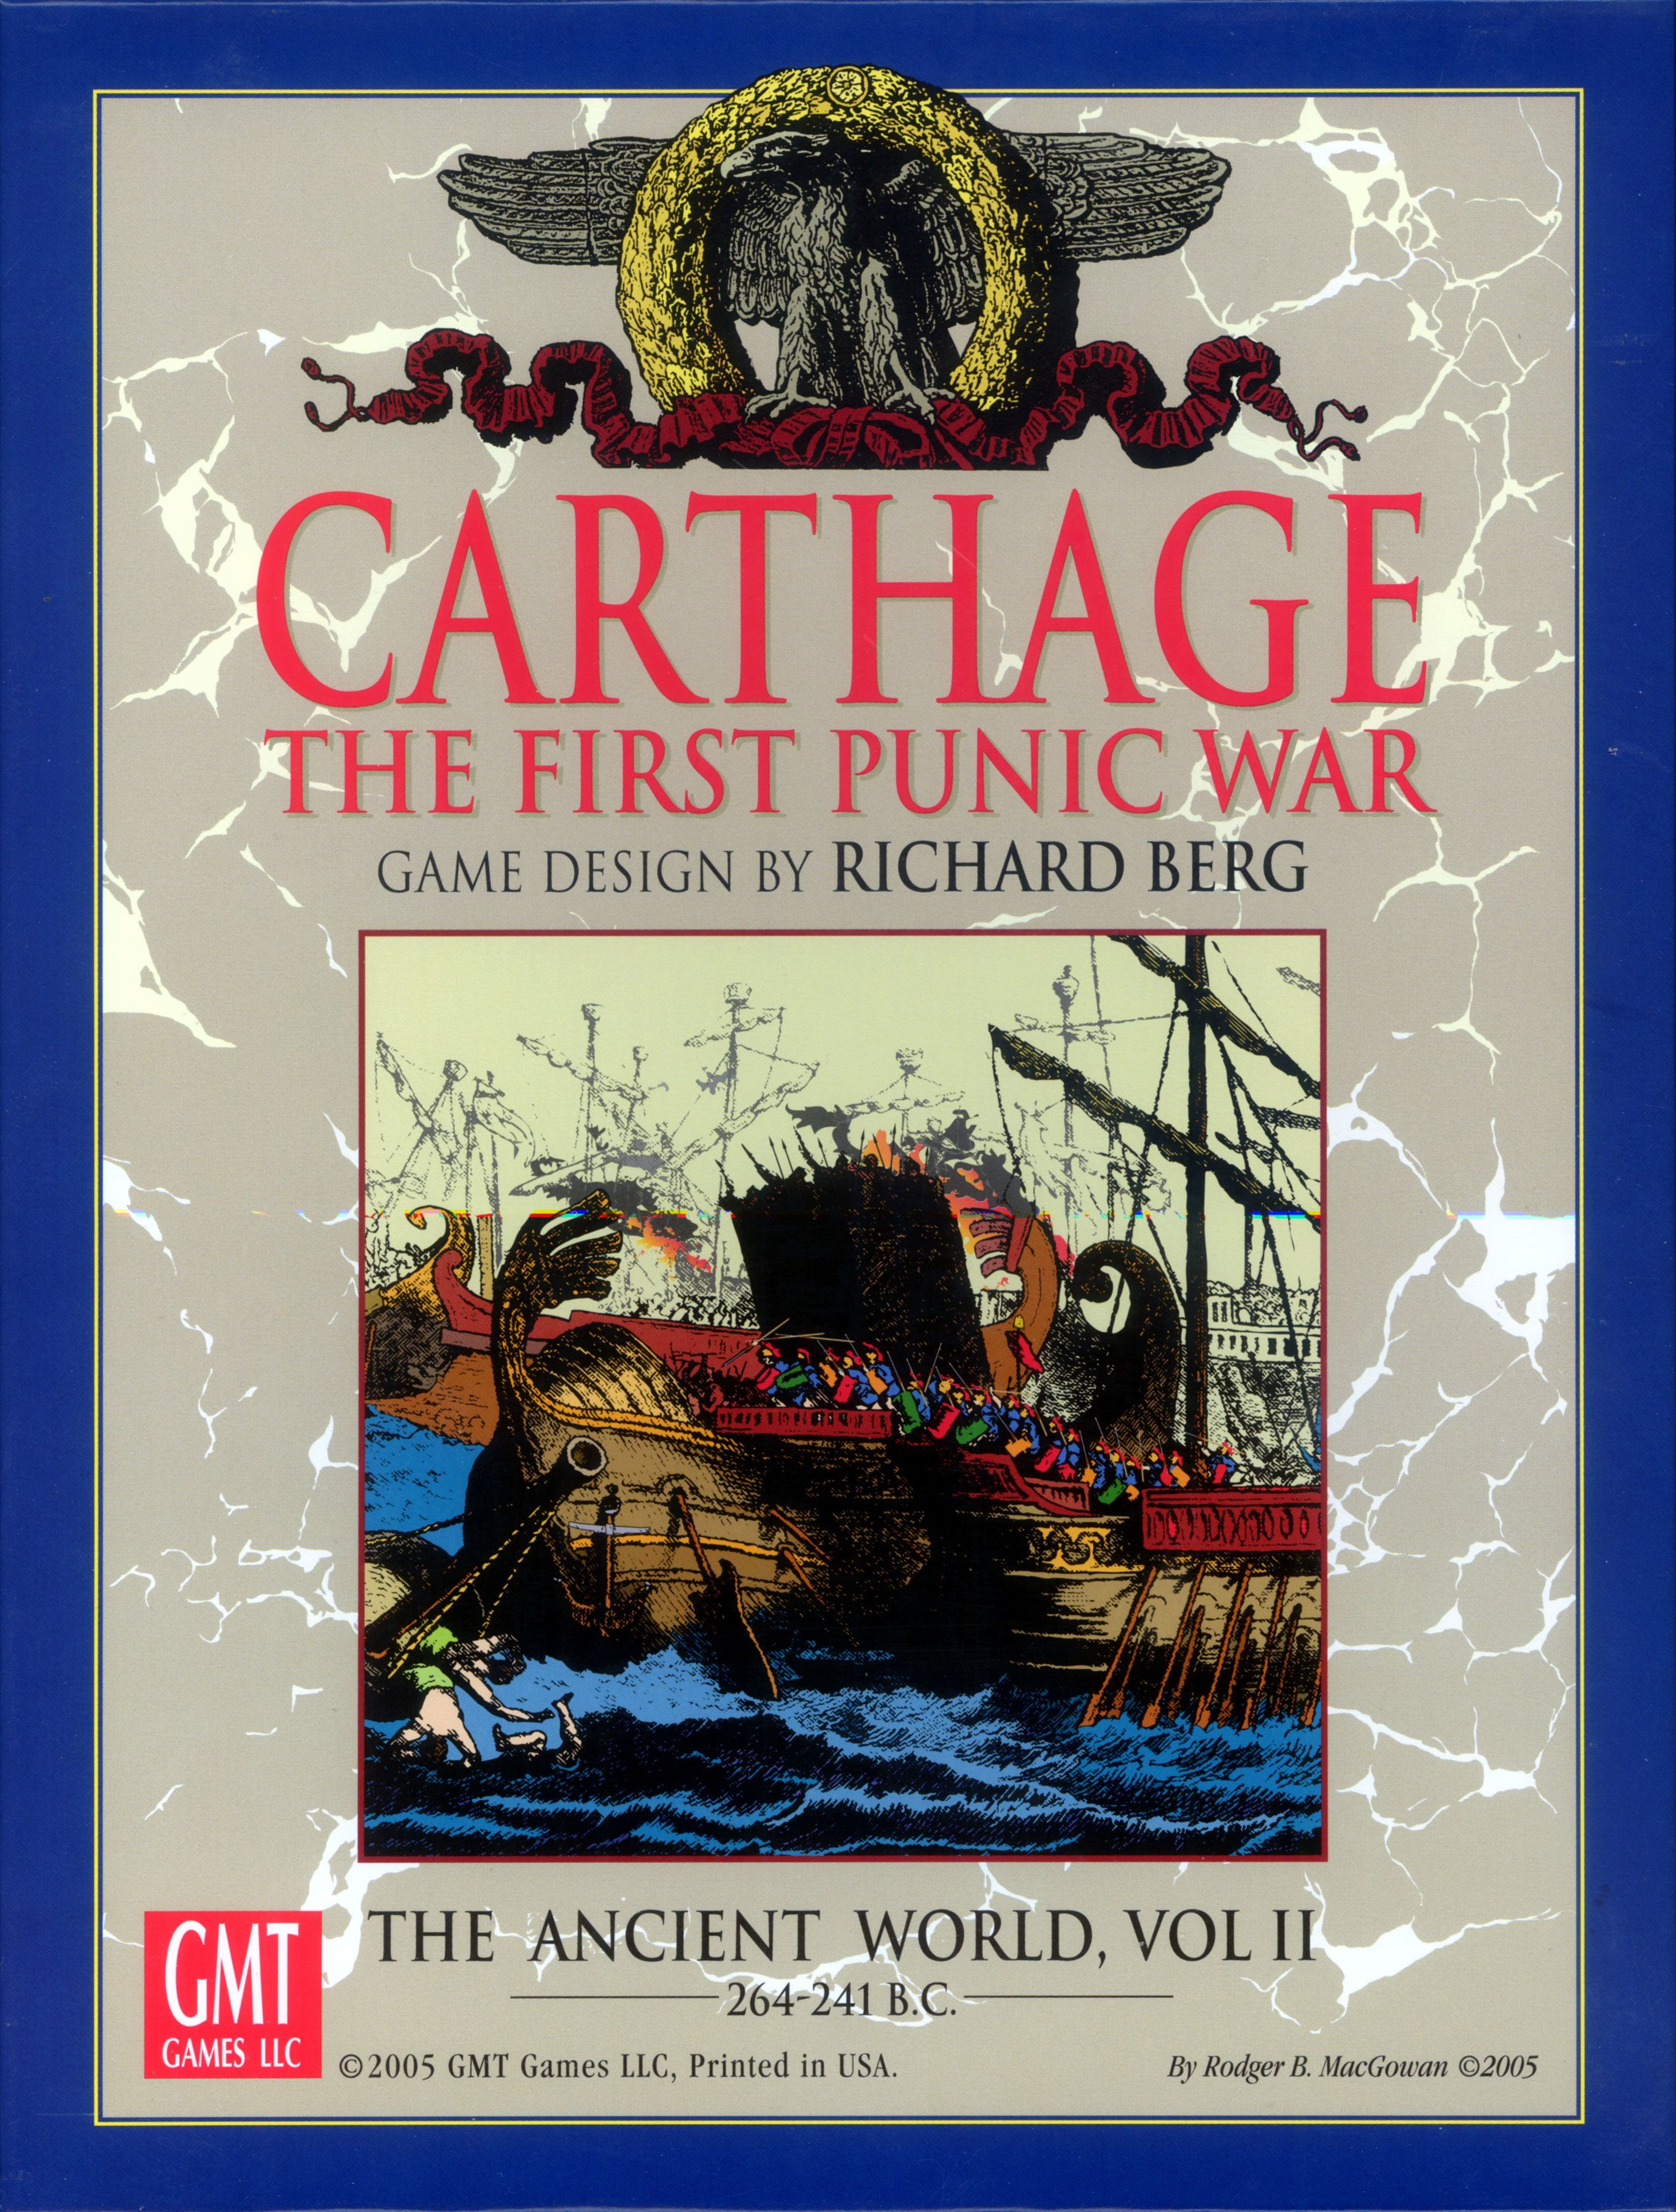 Carthage: The First Punic War